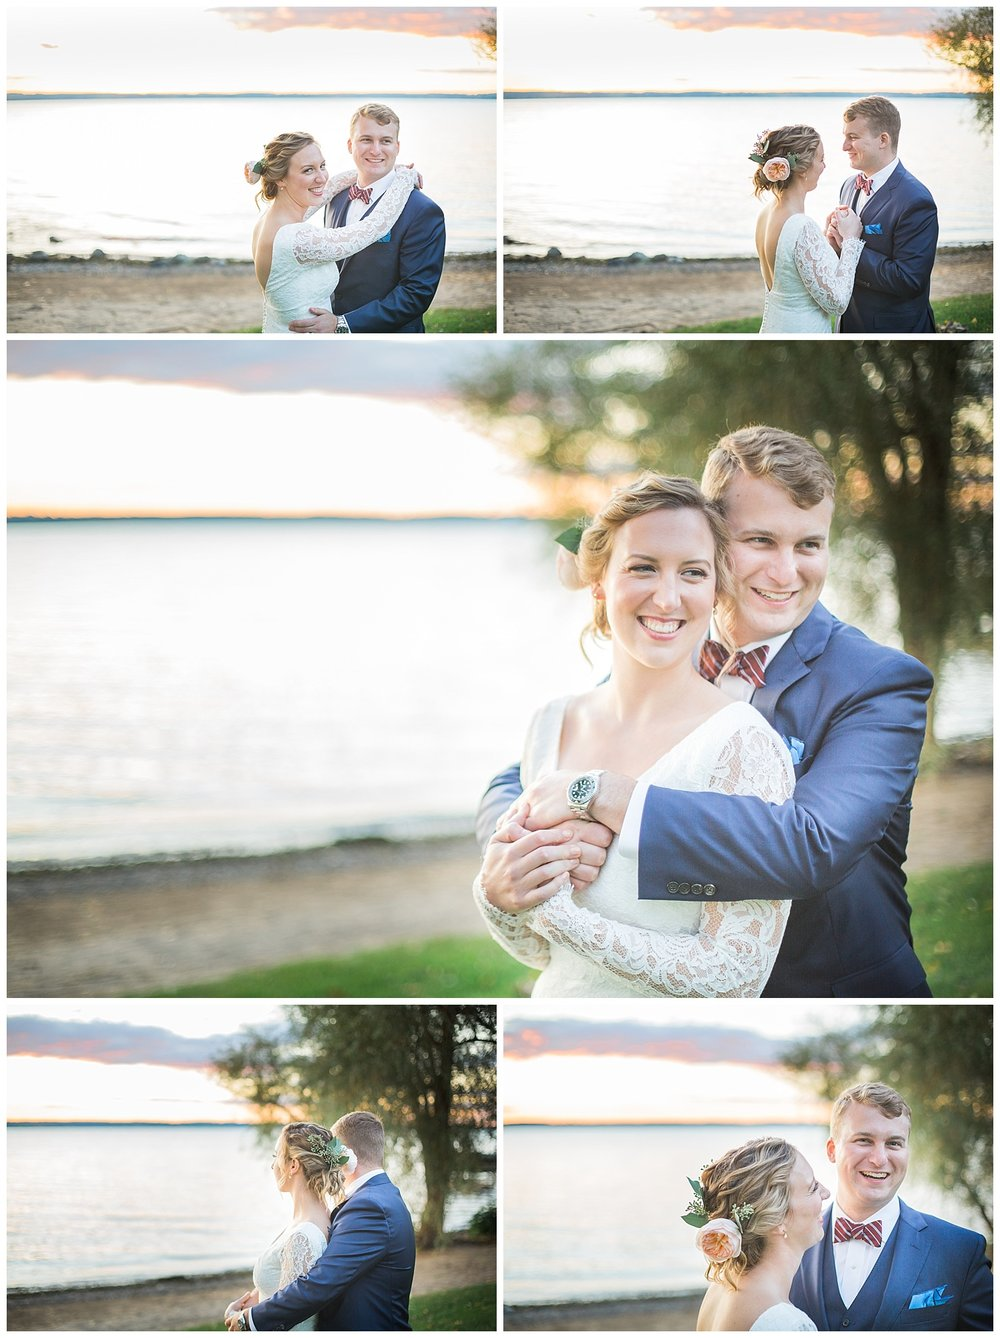 Margaret and Colin - Inns of Aurora - Lass and Beau-1591_Buffalo wedding photography.jpg